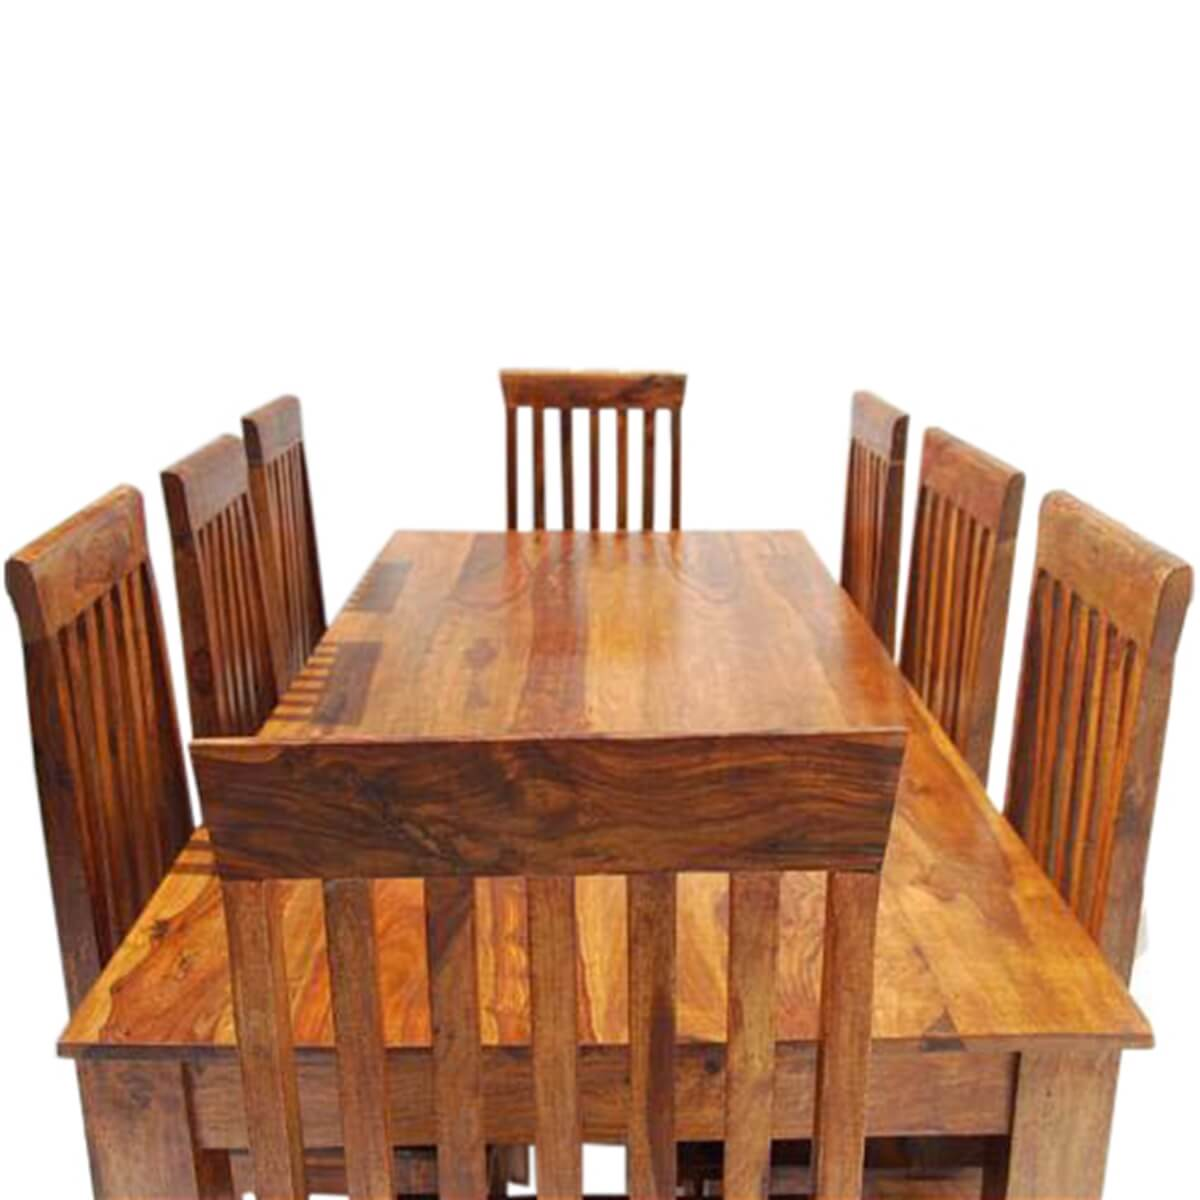 Rustic Furniture Solid Wood Large Dining Table 8 Chair Set: Rustic 9 Piece Dining Table And 8 Chairs Set Solid Wood